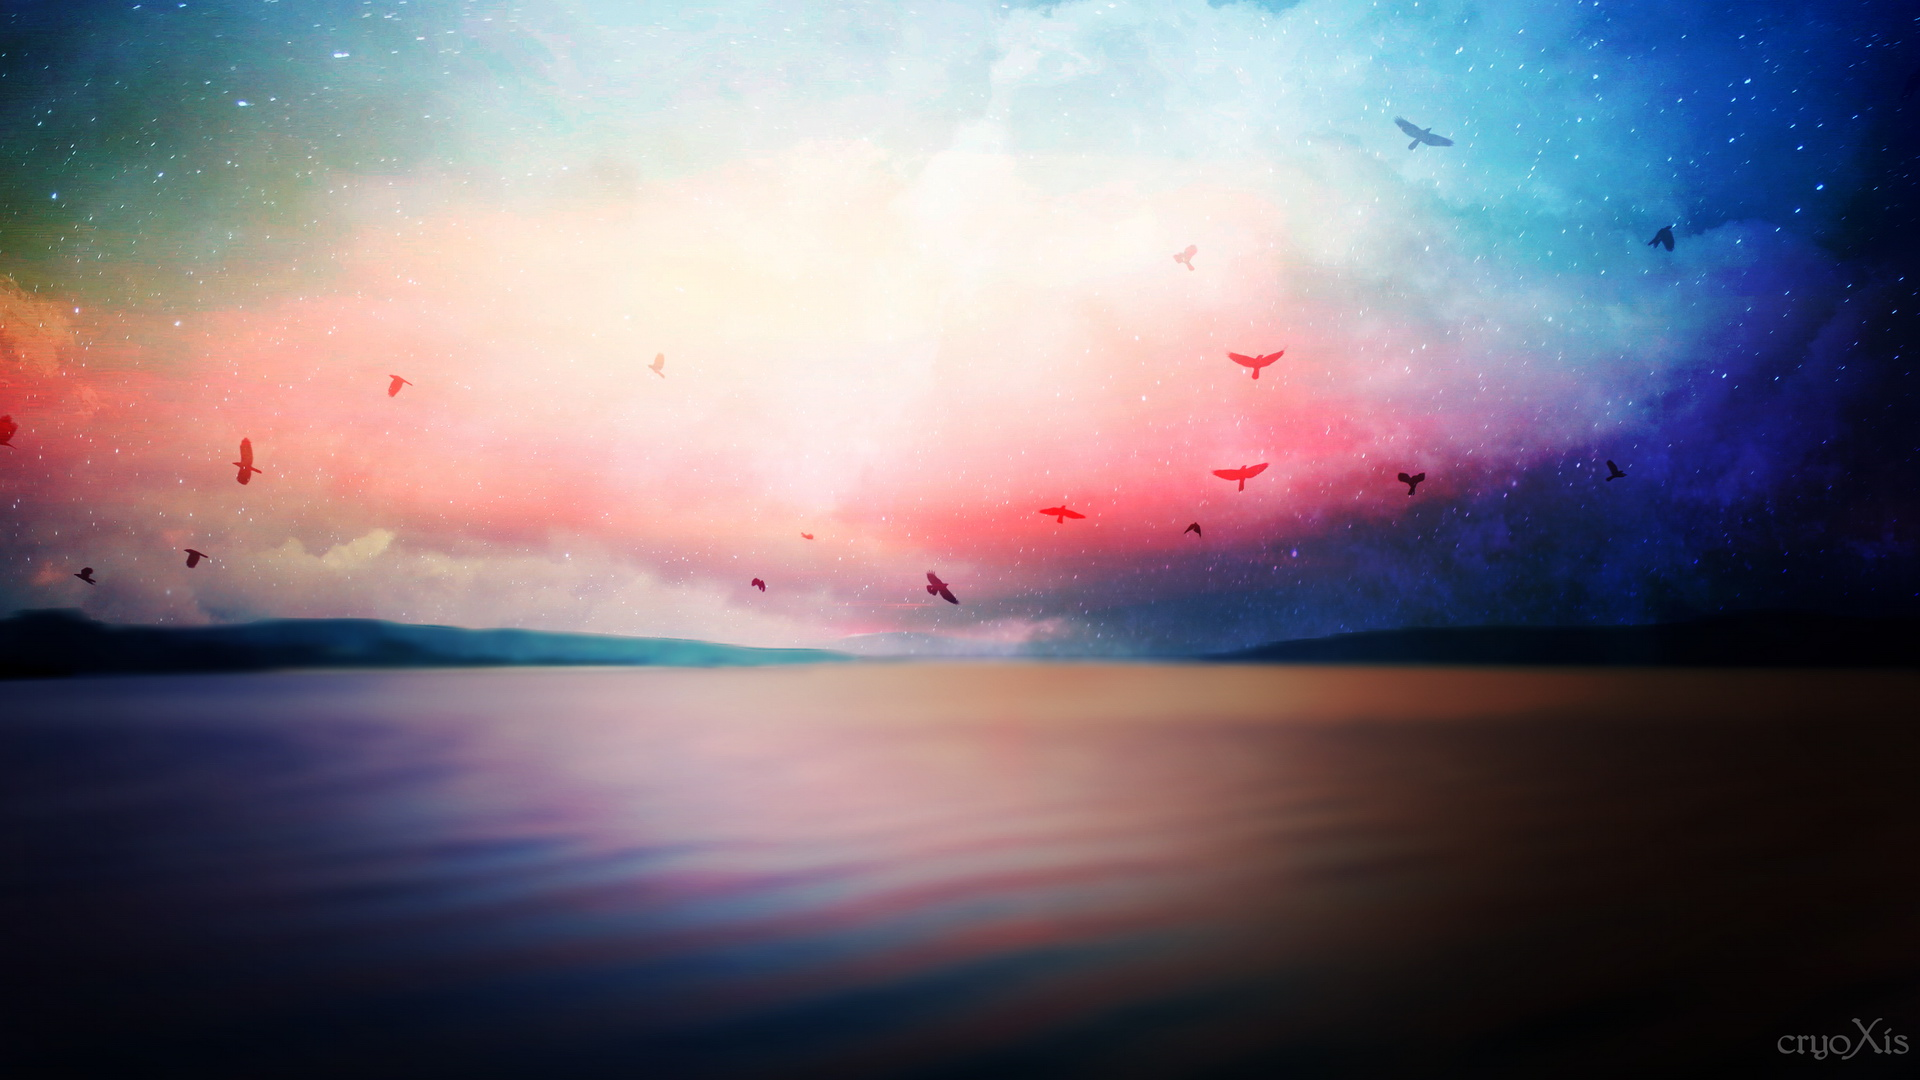 the wallpaperThe Sea in Peaceful and Slow Flow, the Sky is Colorful 1428